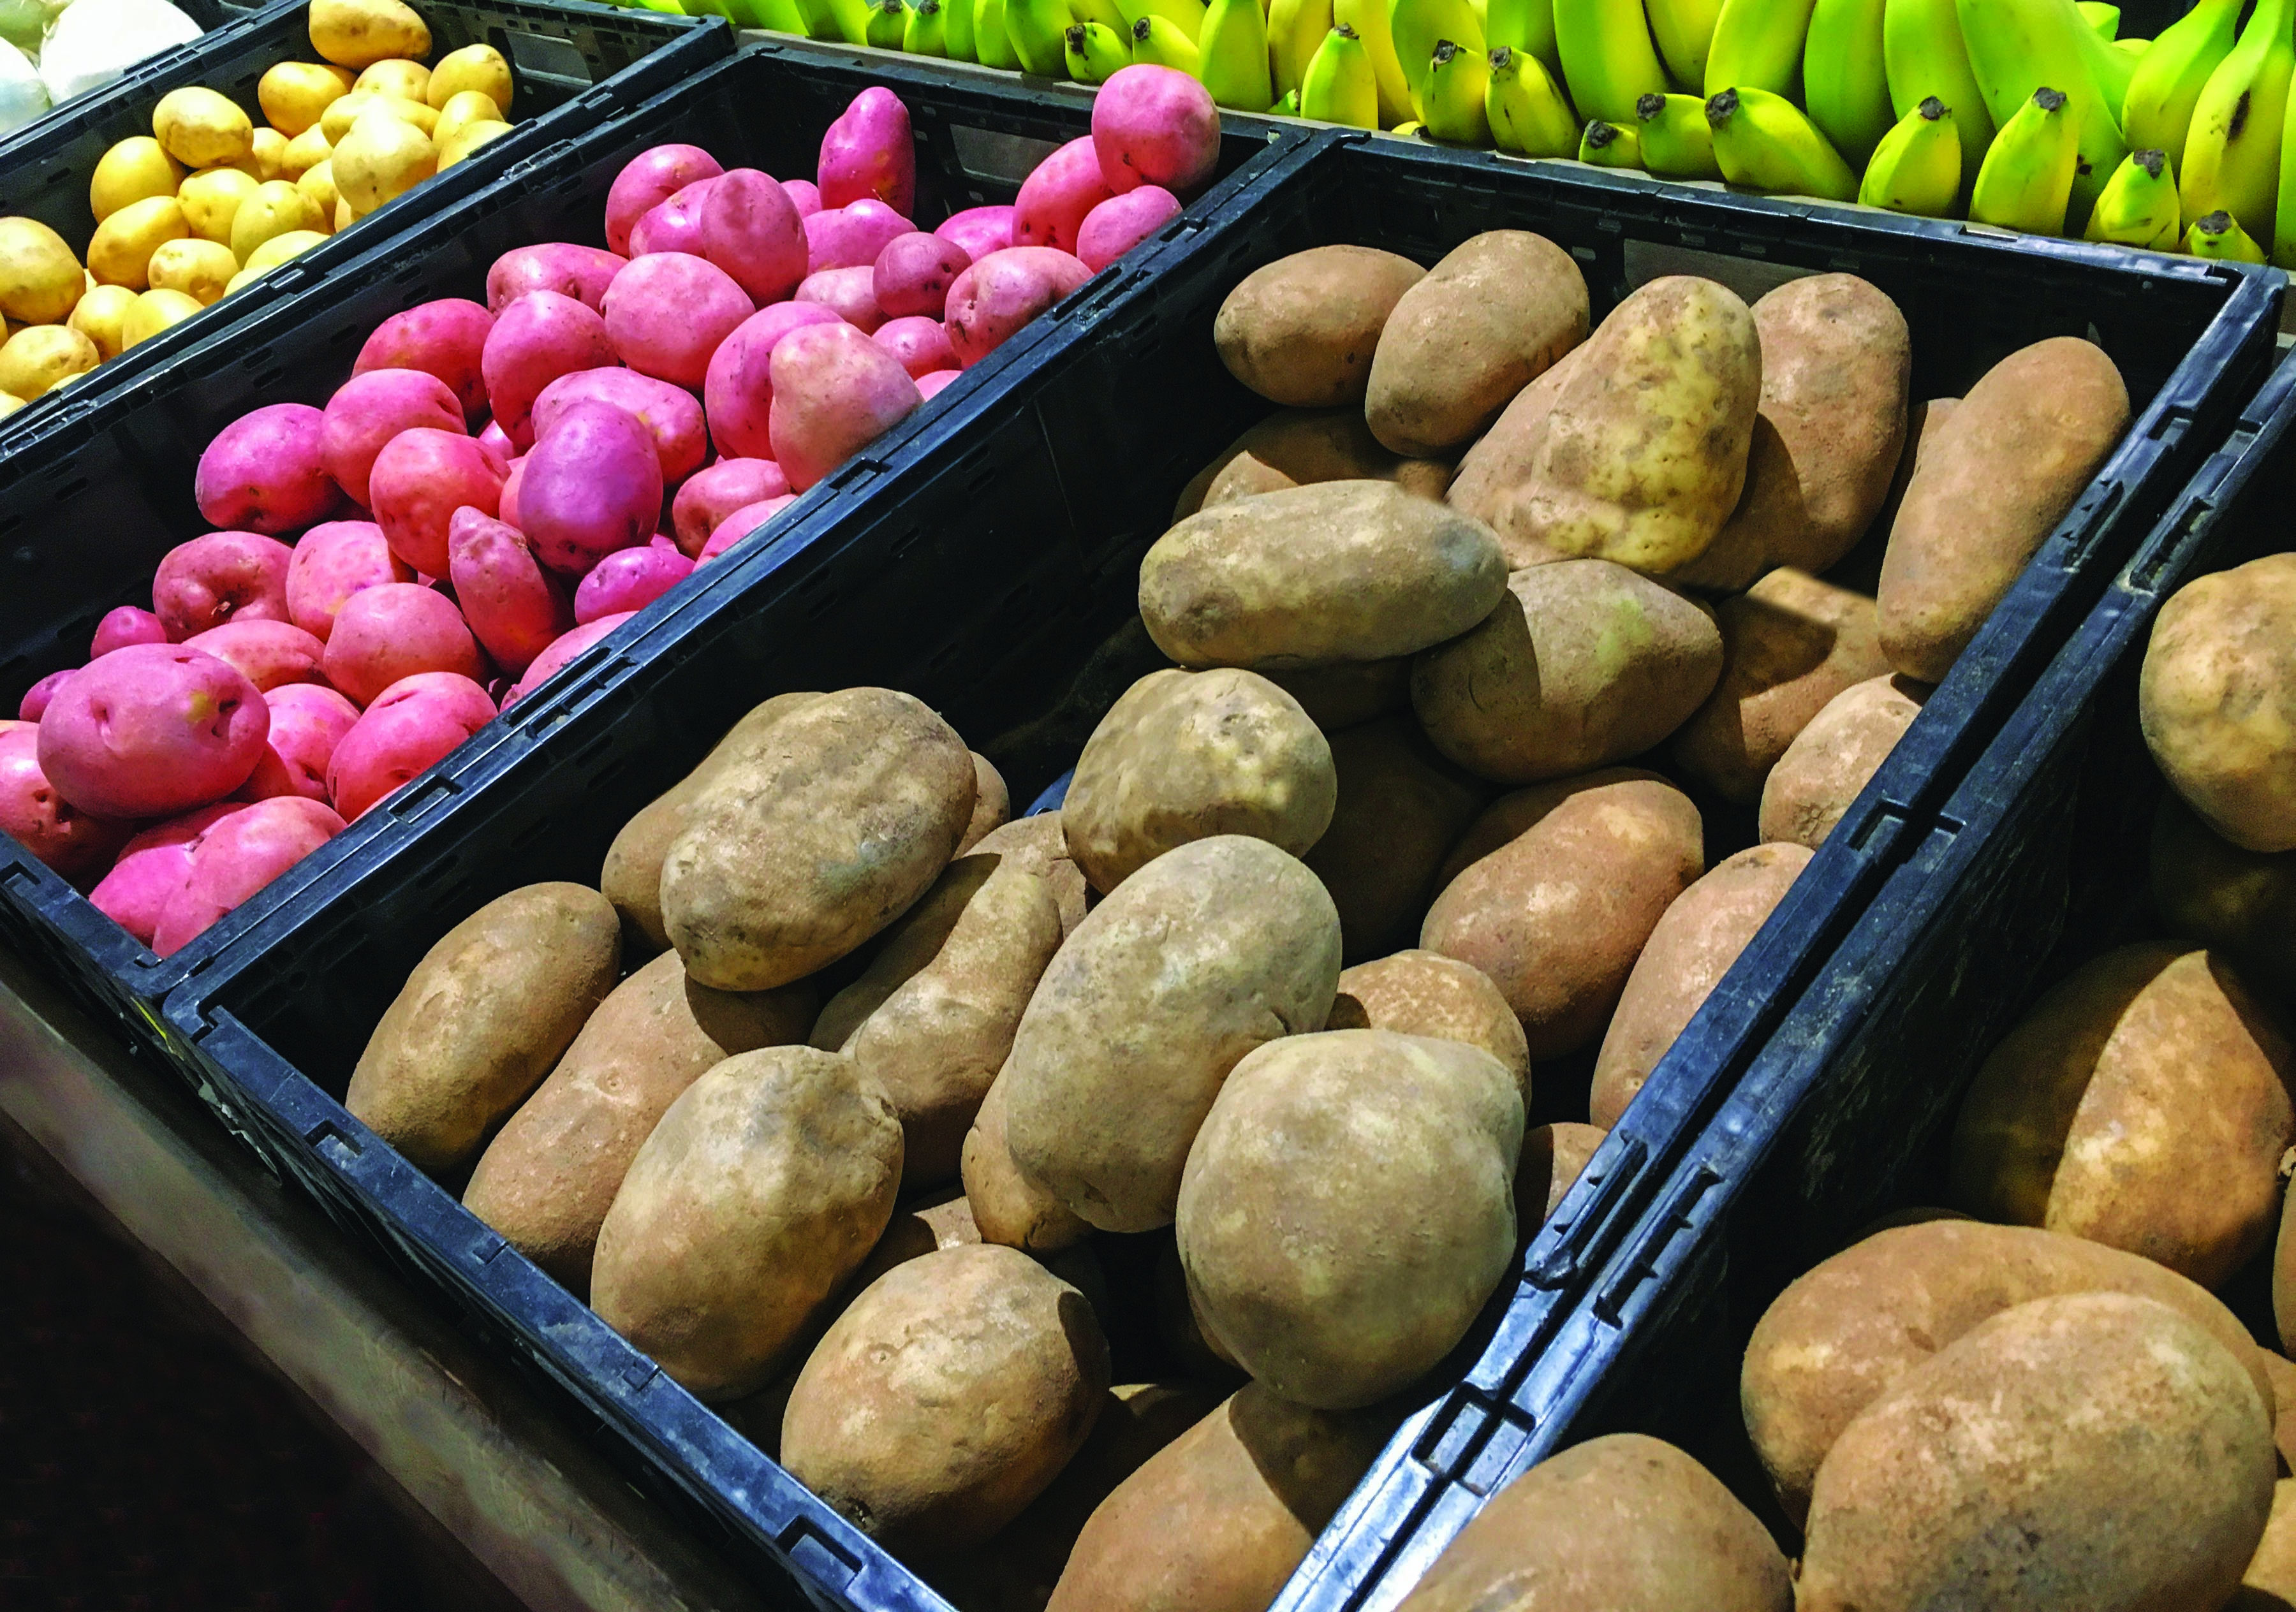 In The Produce Aisle All Eyes Are On Potatoes Supermarket News